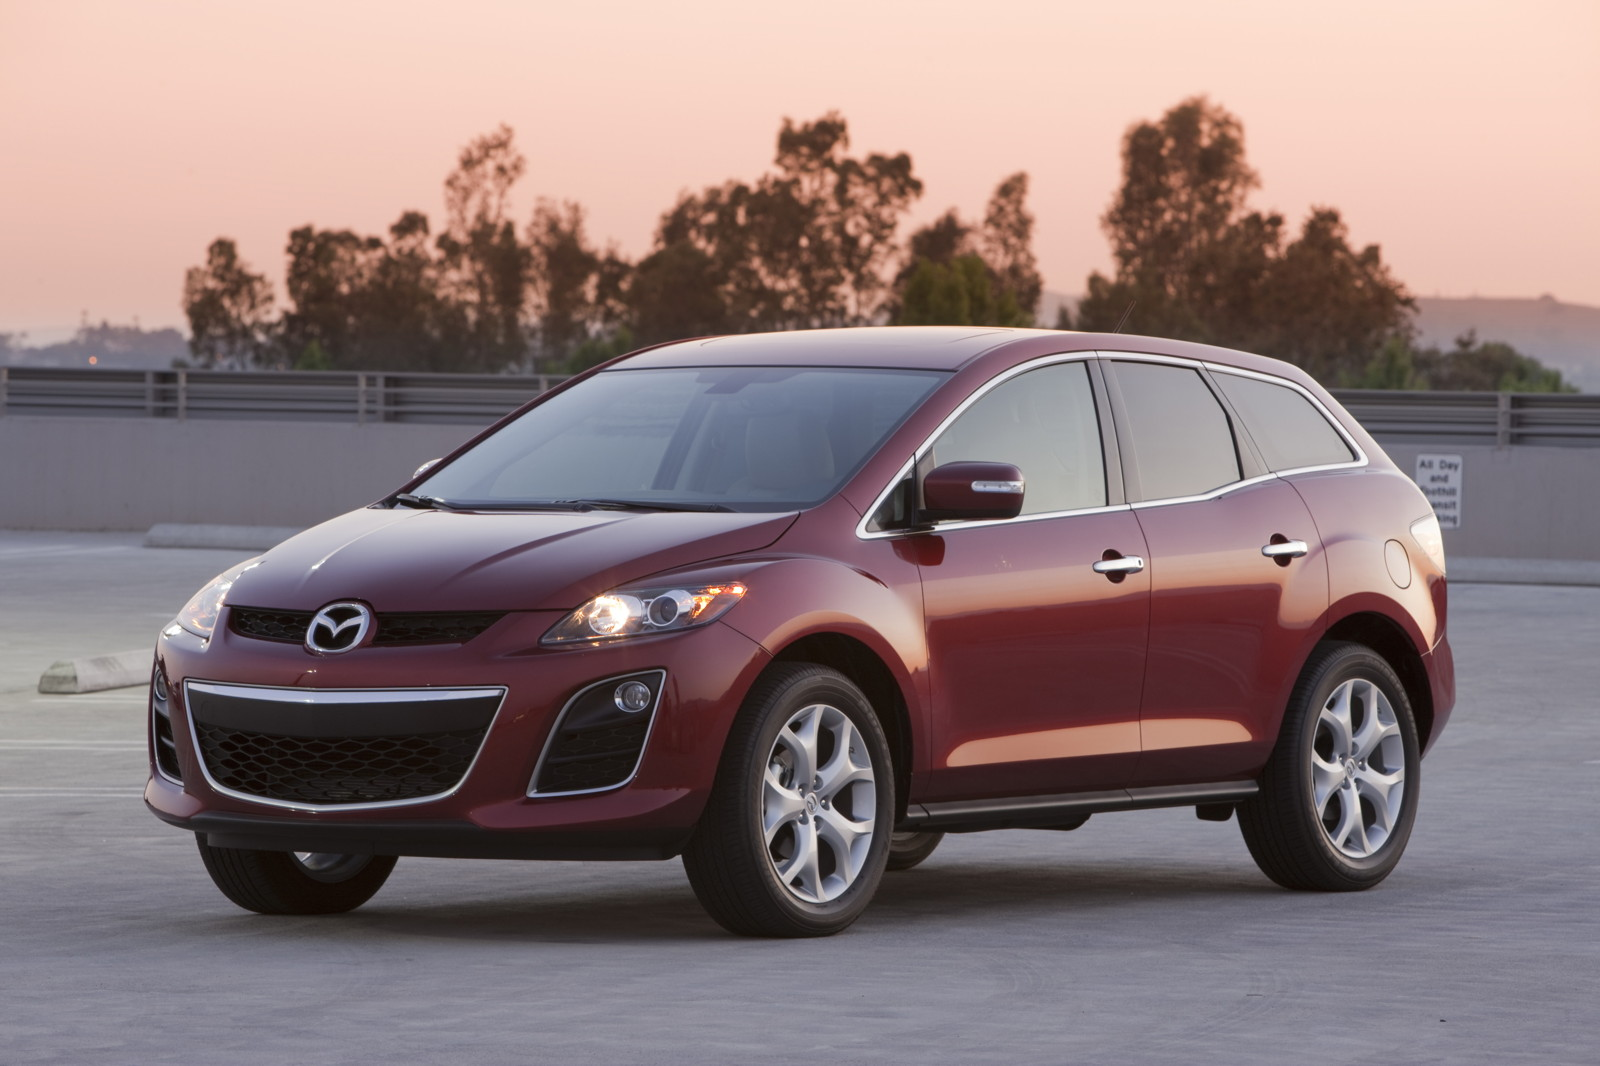 2010 mazda cx 7 review ratings specs prices and photos the car connection. Black Bedroom Furniture Sets. Home Design Ideas